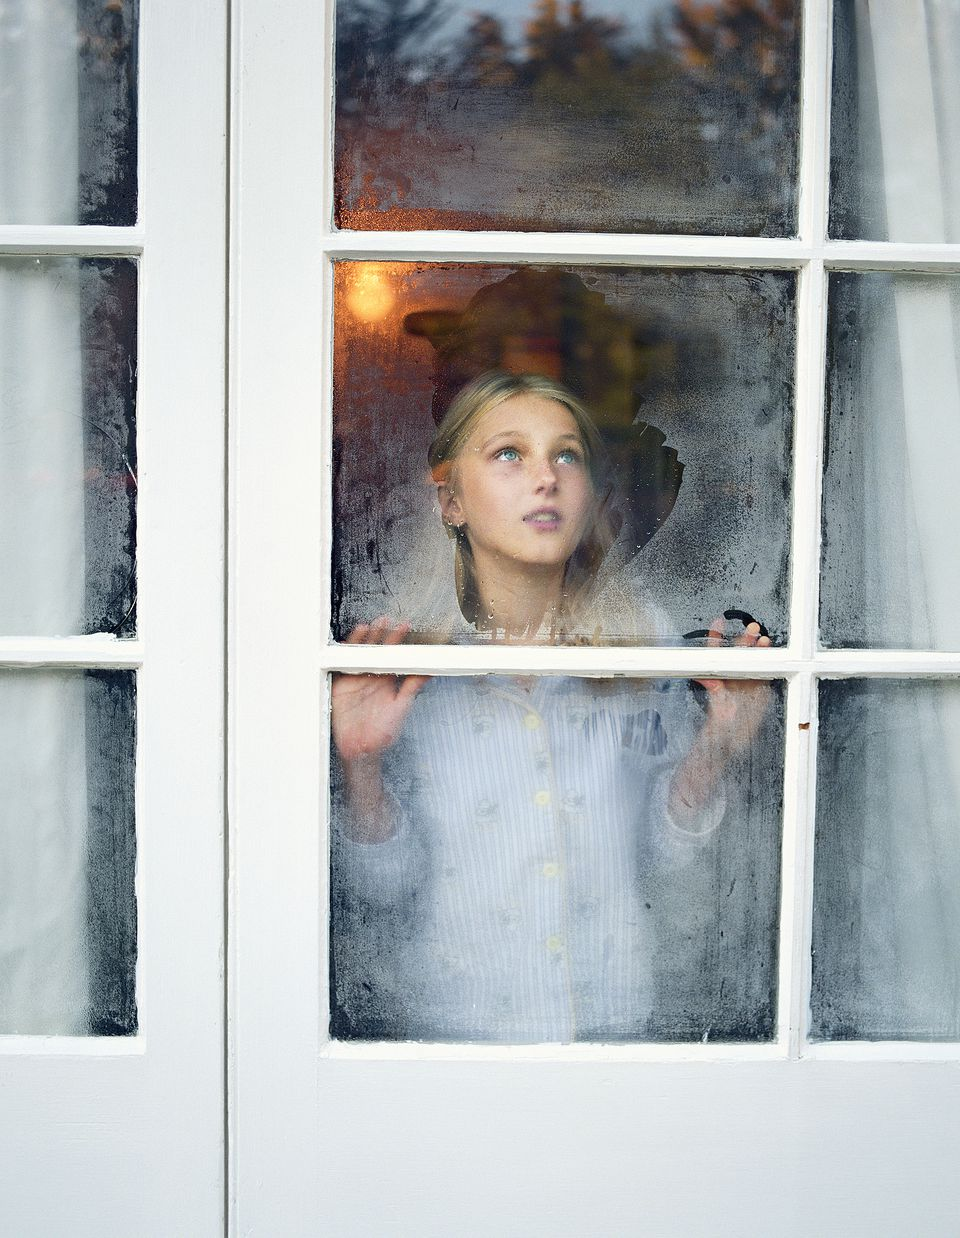 Girl-looking-out-window-GettyImages-200148753-001-586eca985f9b584db3e2c756.jpg